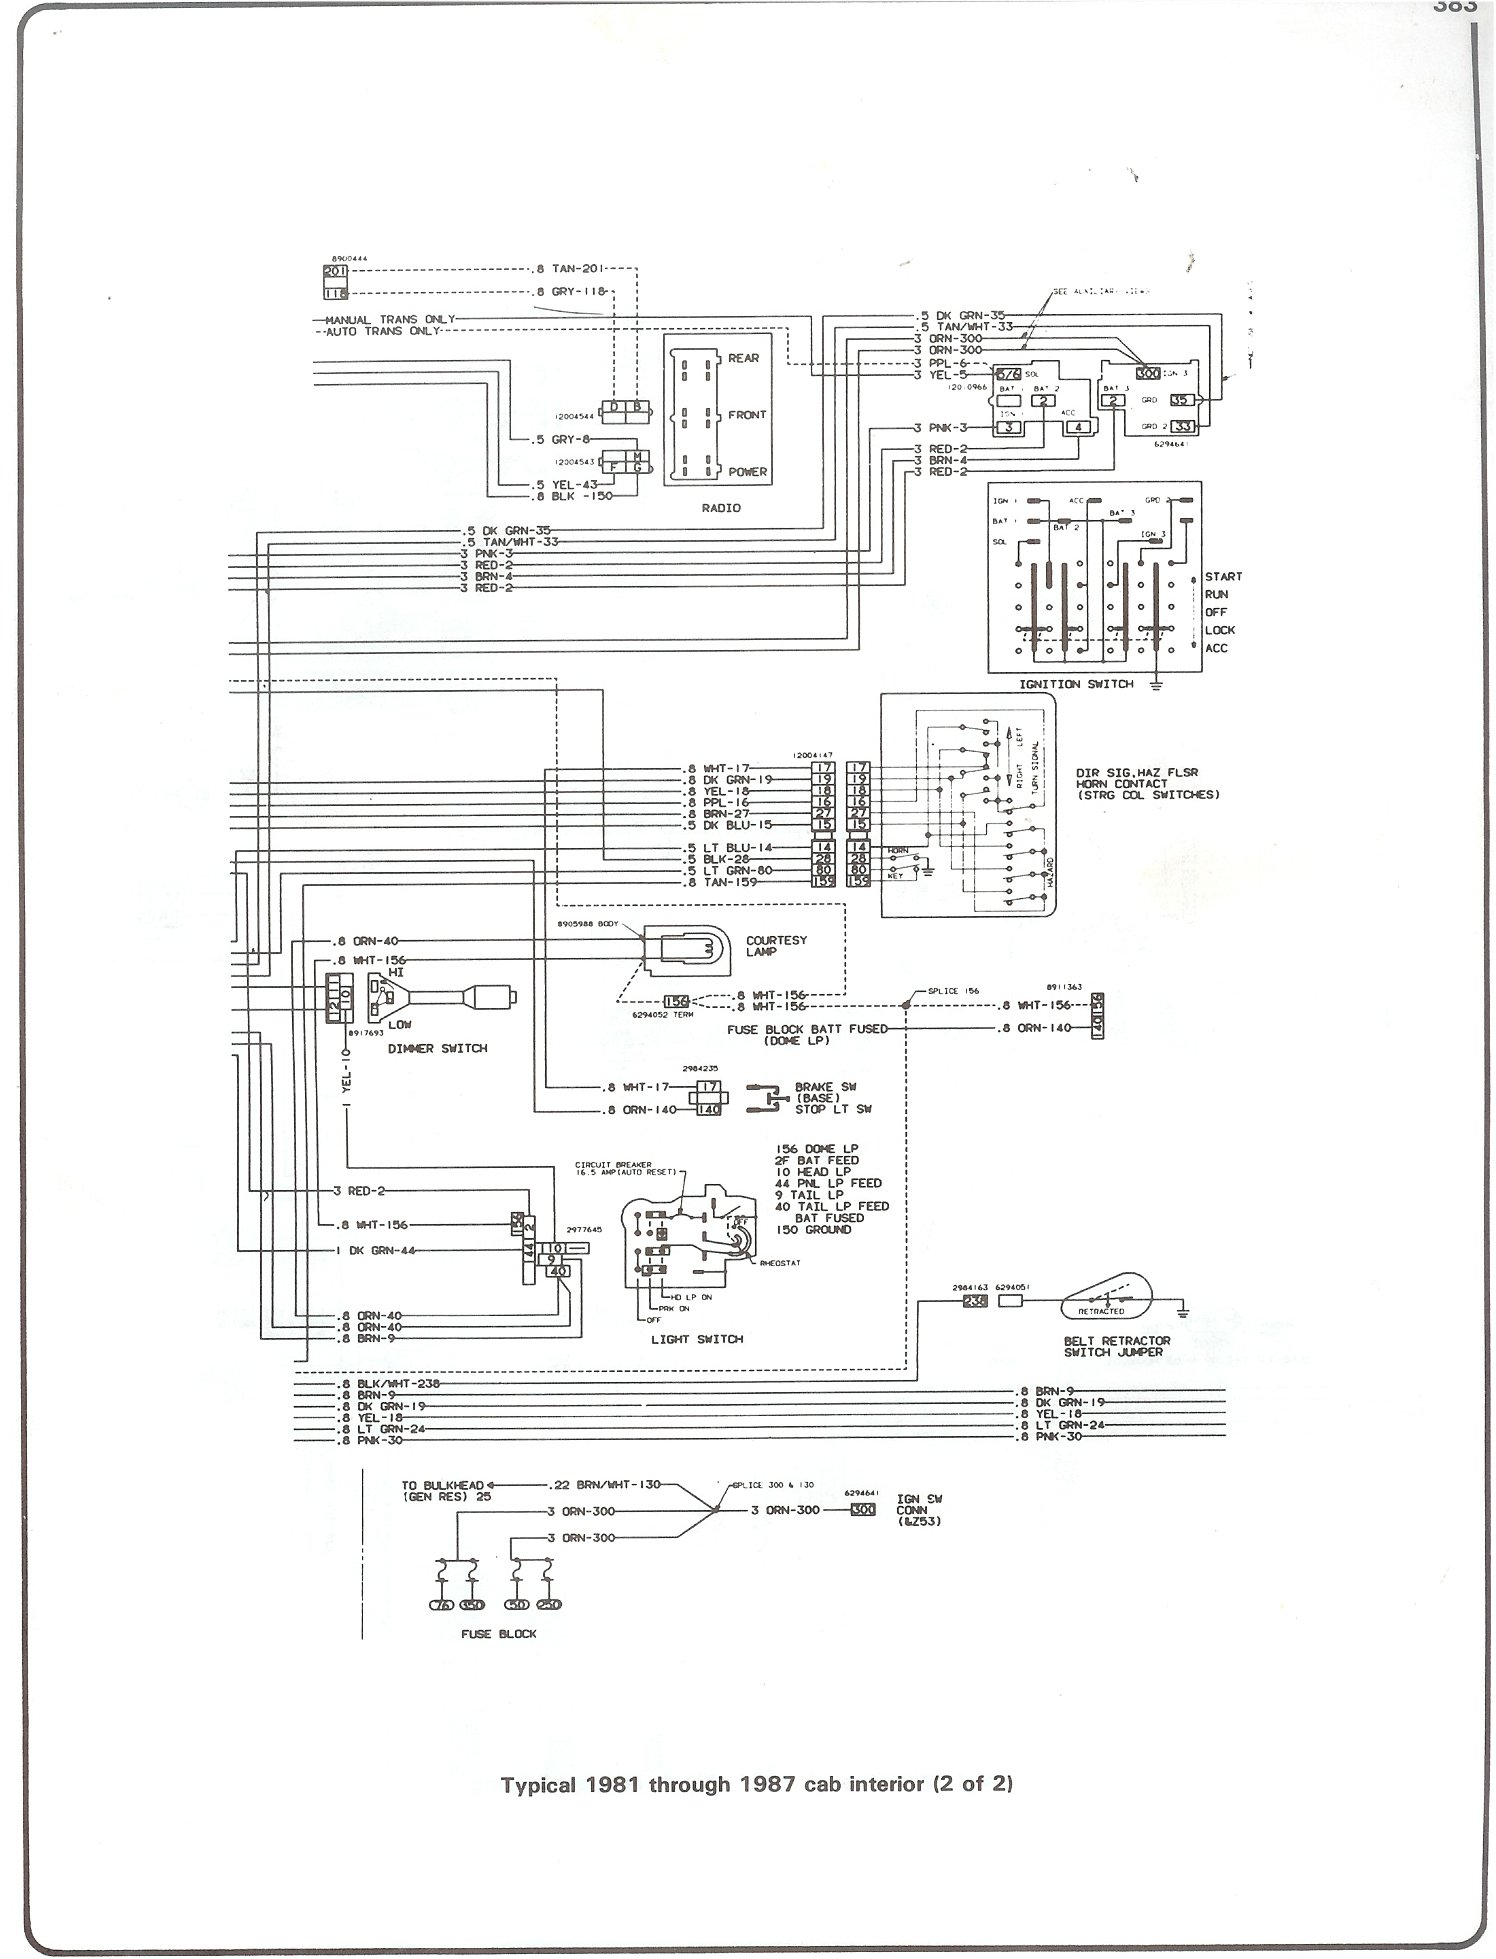 1987 chevy engine wiring diagram wiring diagram k3  87 chevy truck engine wiring harness diagram #6